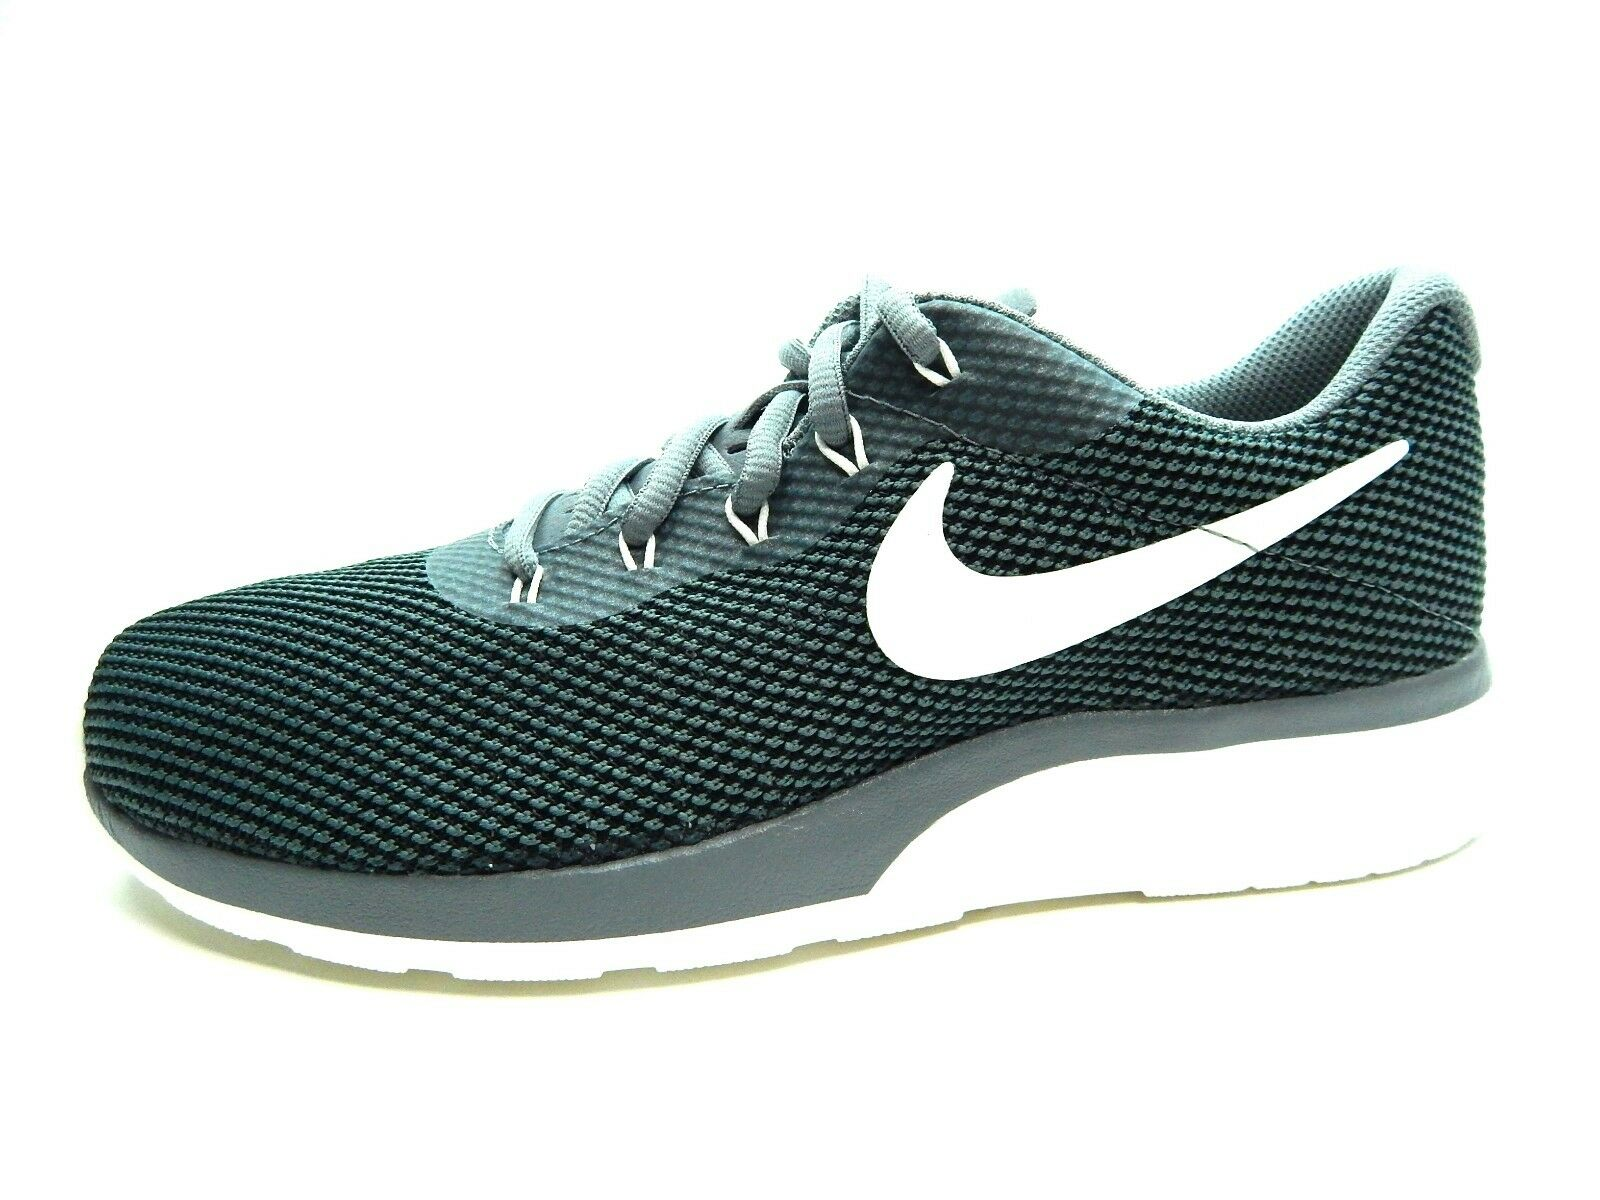 NIKE TANJUN RACER 921668003 COOL GREY SAIL BLACK WOMEN SHOES SIZE 6 TO 10